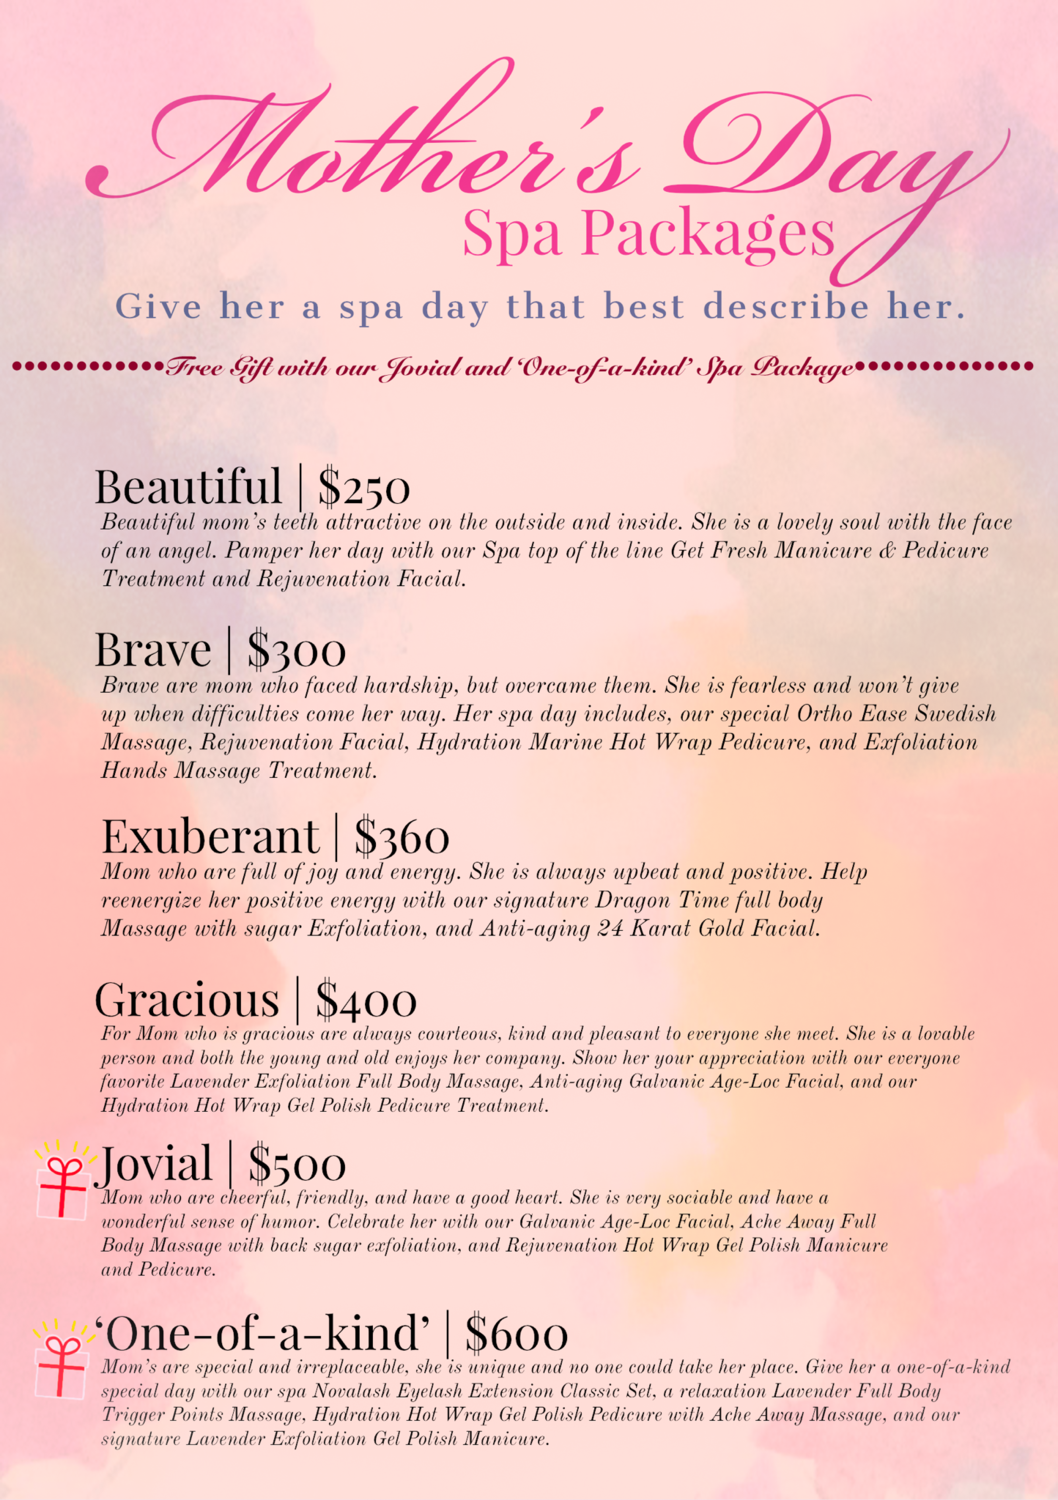 Mother's Day Spa Package: Exuberant